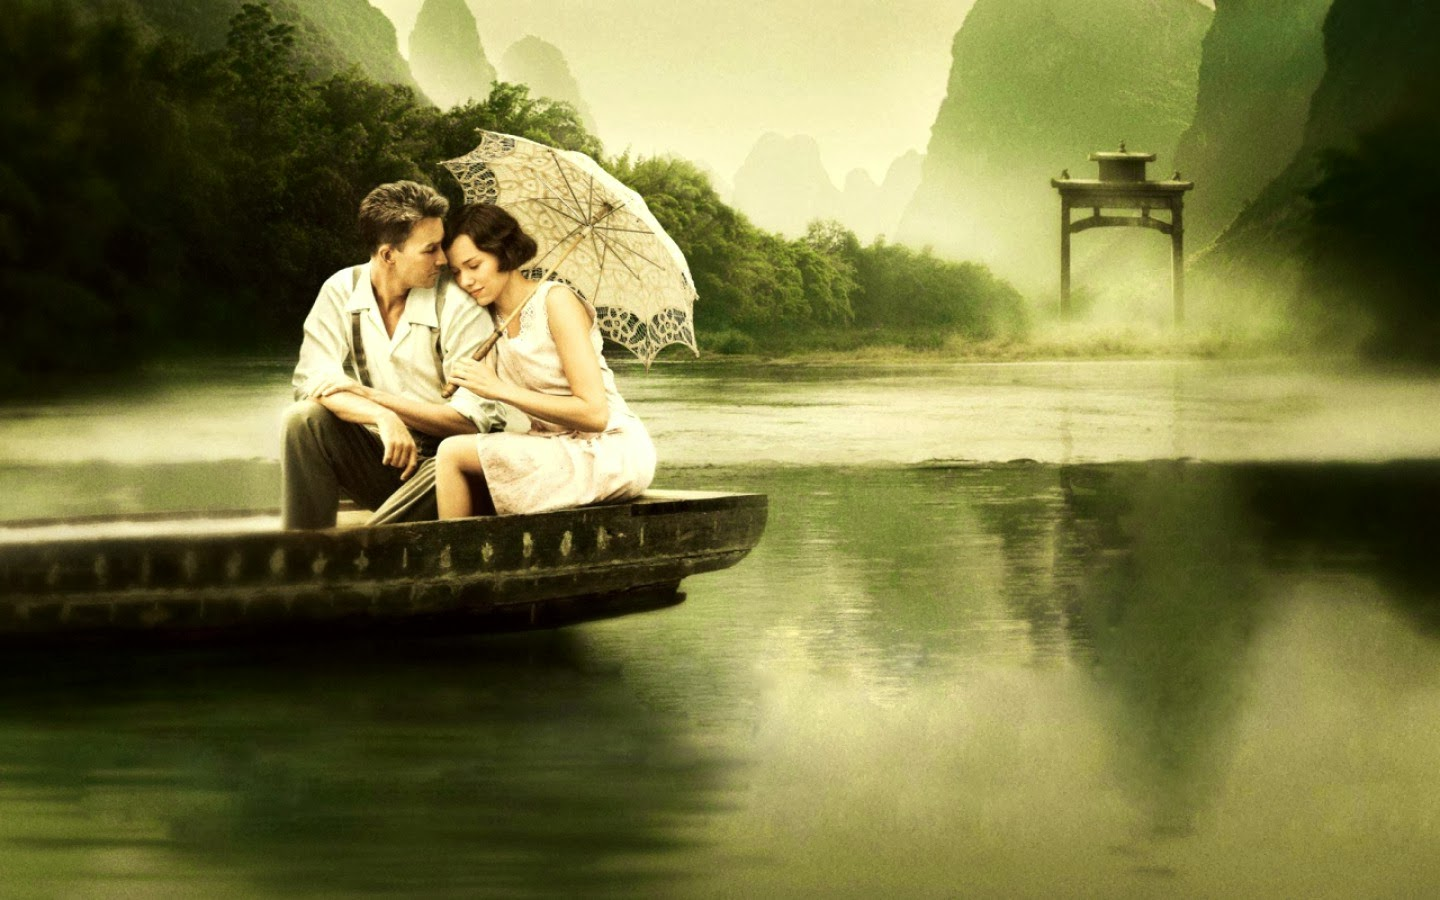 romantic couple hd wallpaper and image. couple in boat - hd